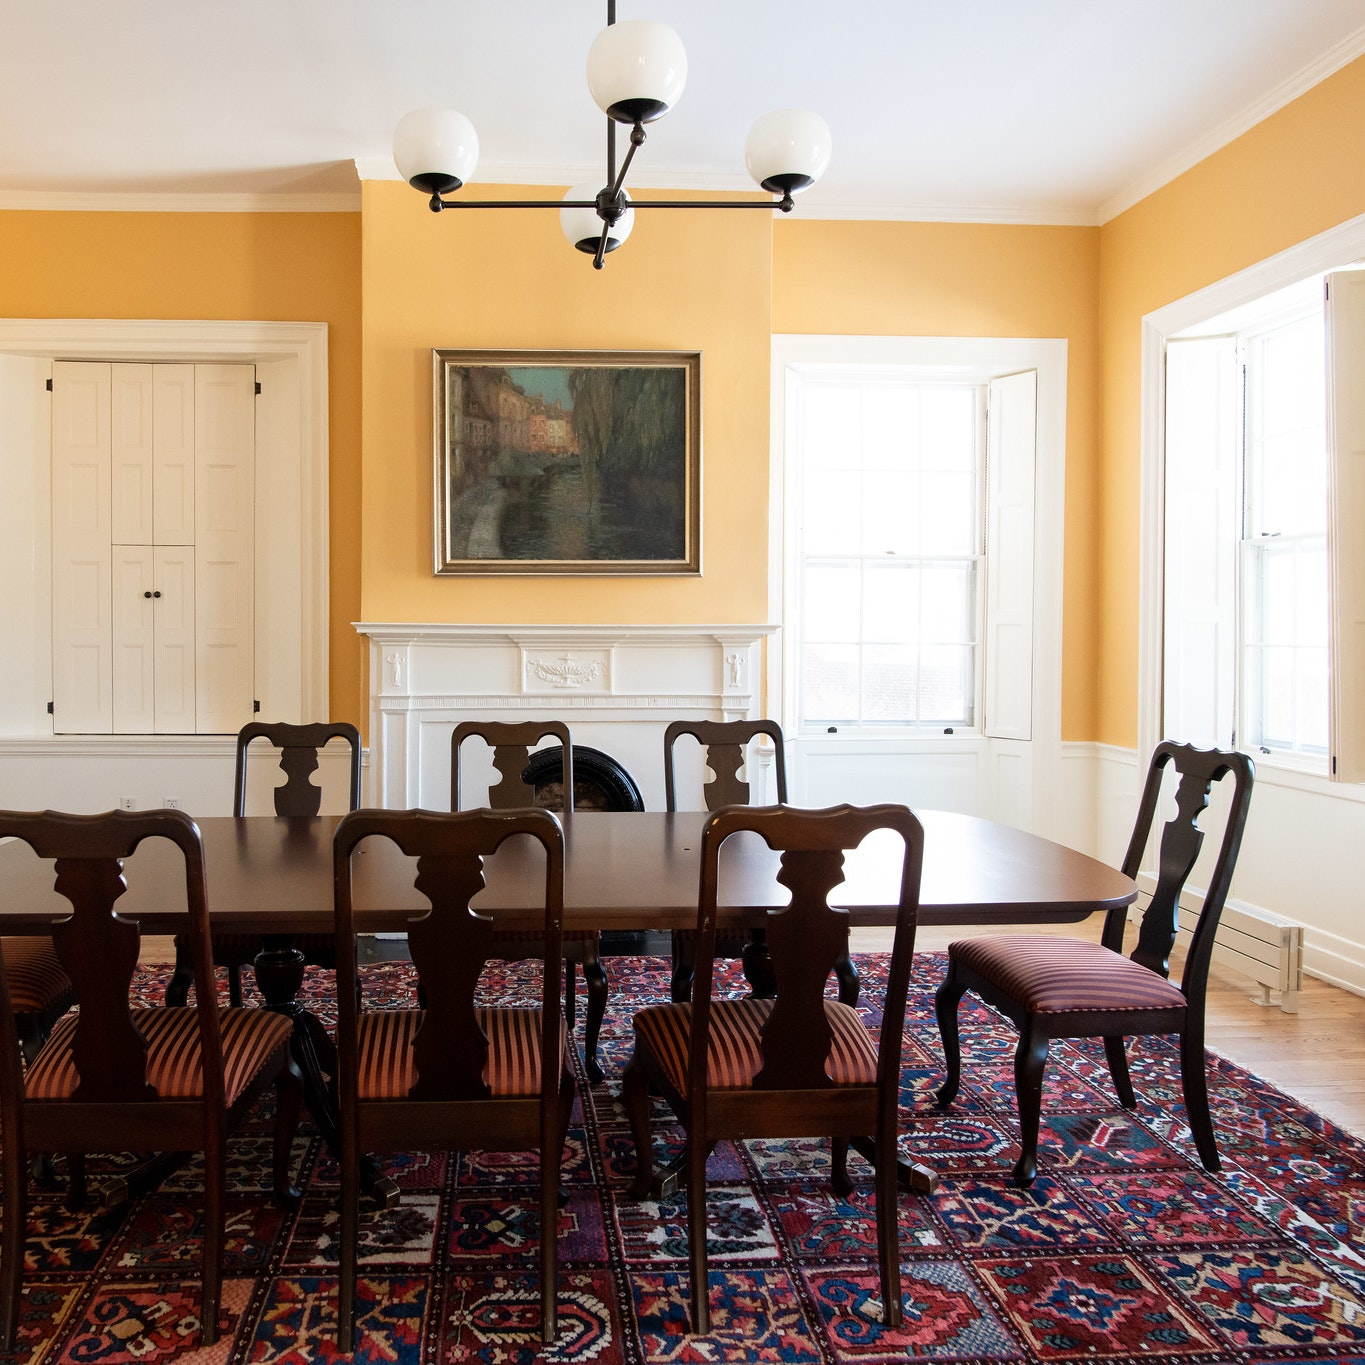 View from the entrance, dark brown wood conference table with 8 seats lined around. Fireplace and painting are on the other side of the room, behind the conference table. Walls are yellow.